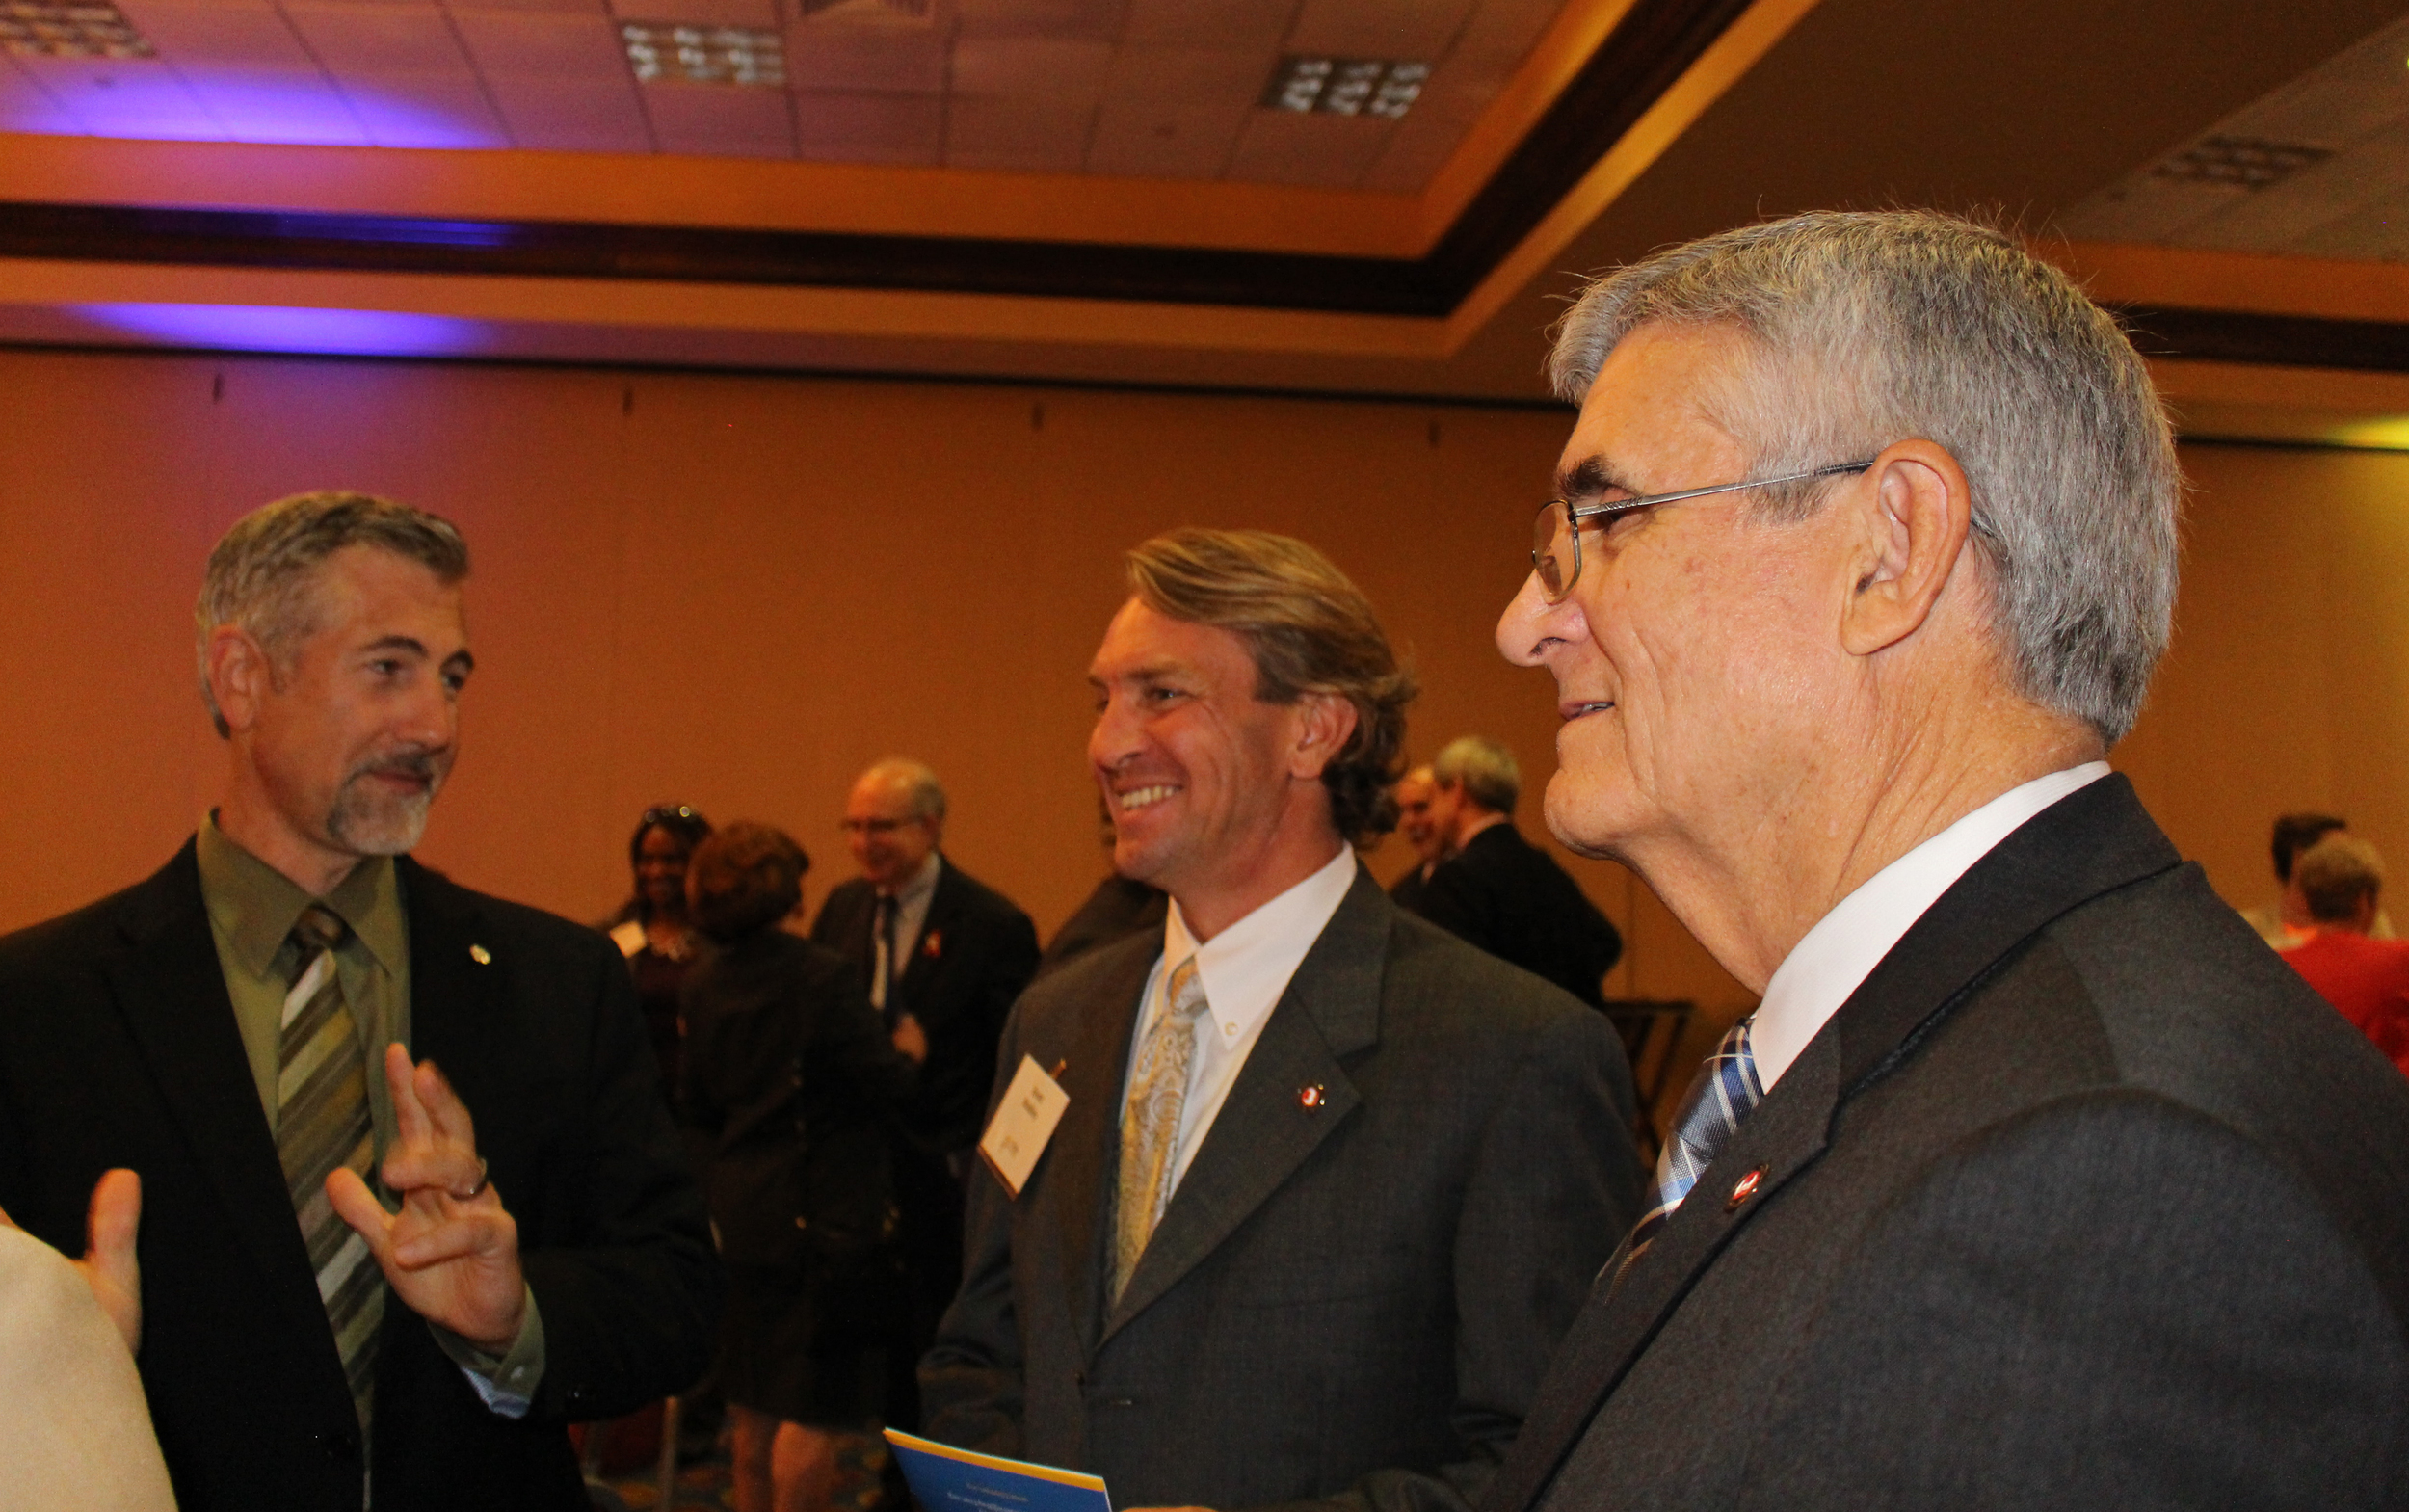 Baytran State of the Counties Lunch 05-12-16 311.JPG